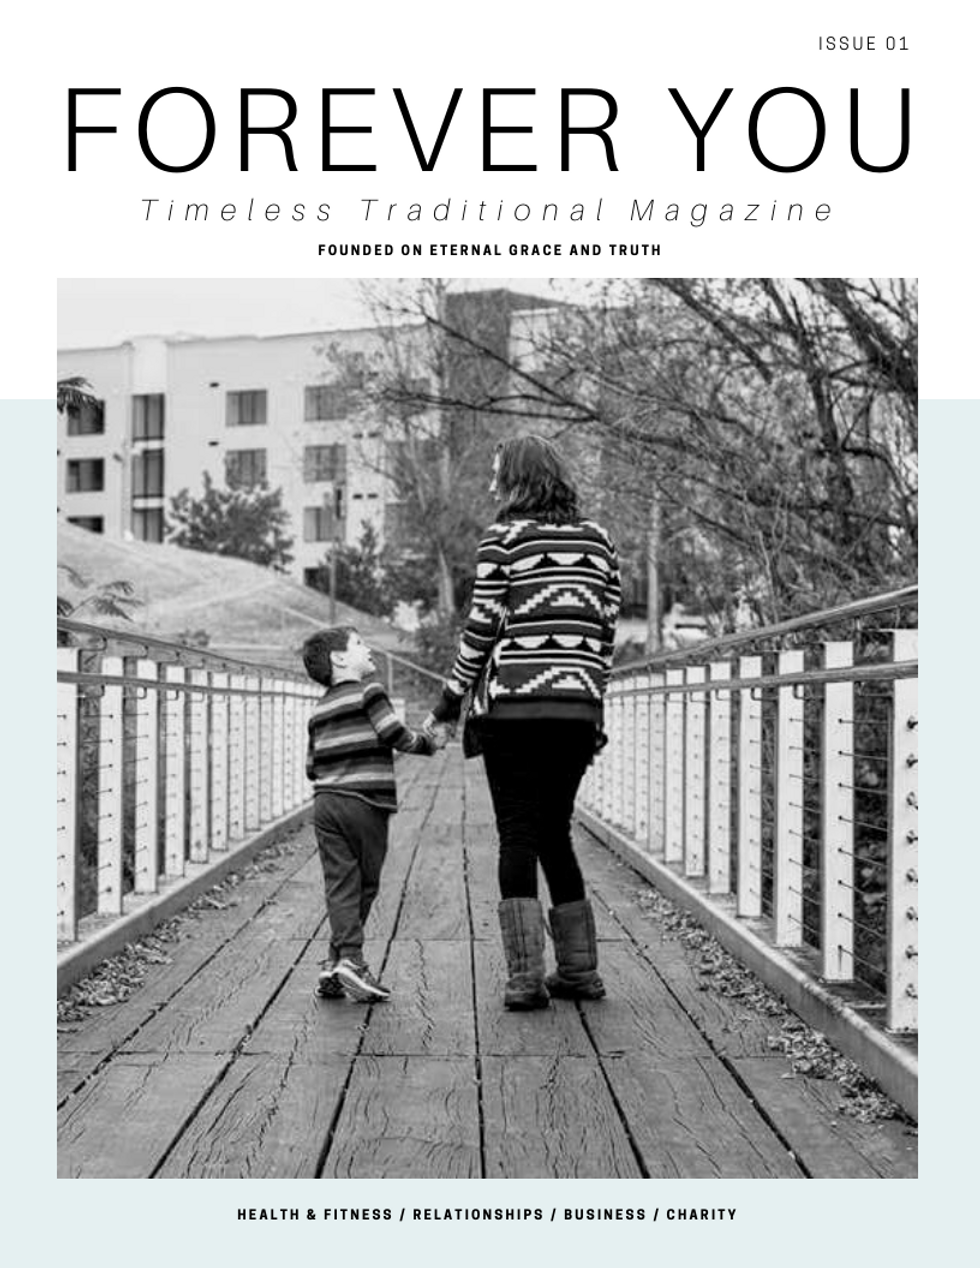 Welcome to Forever You Magazine